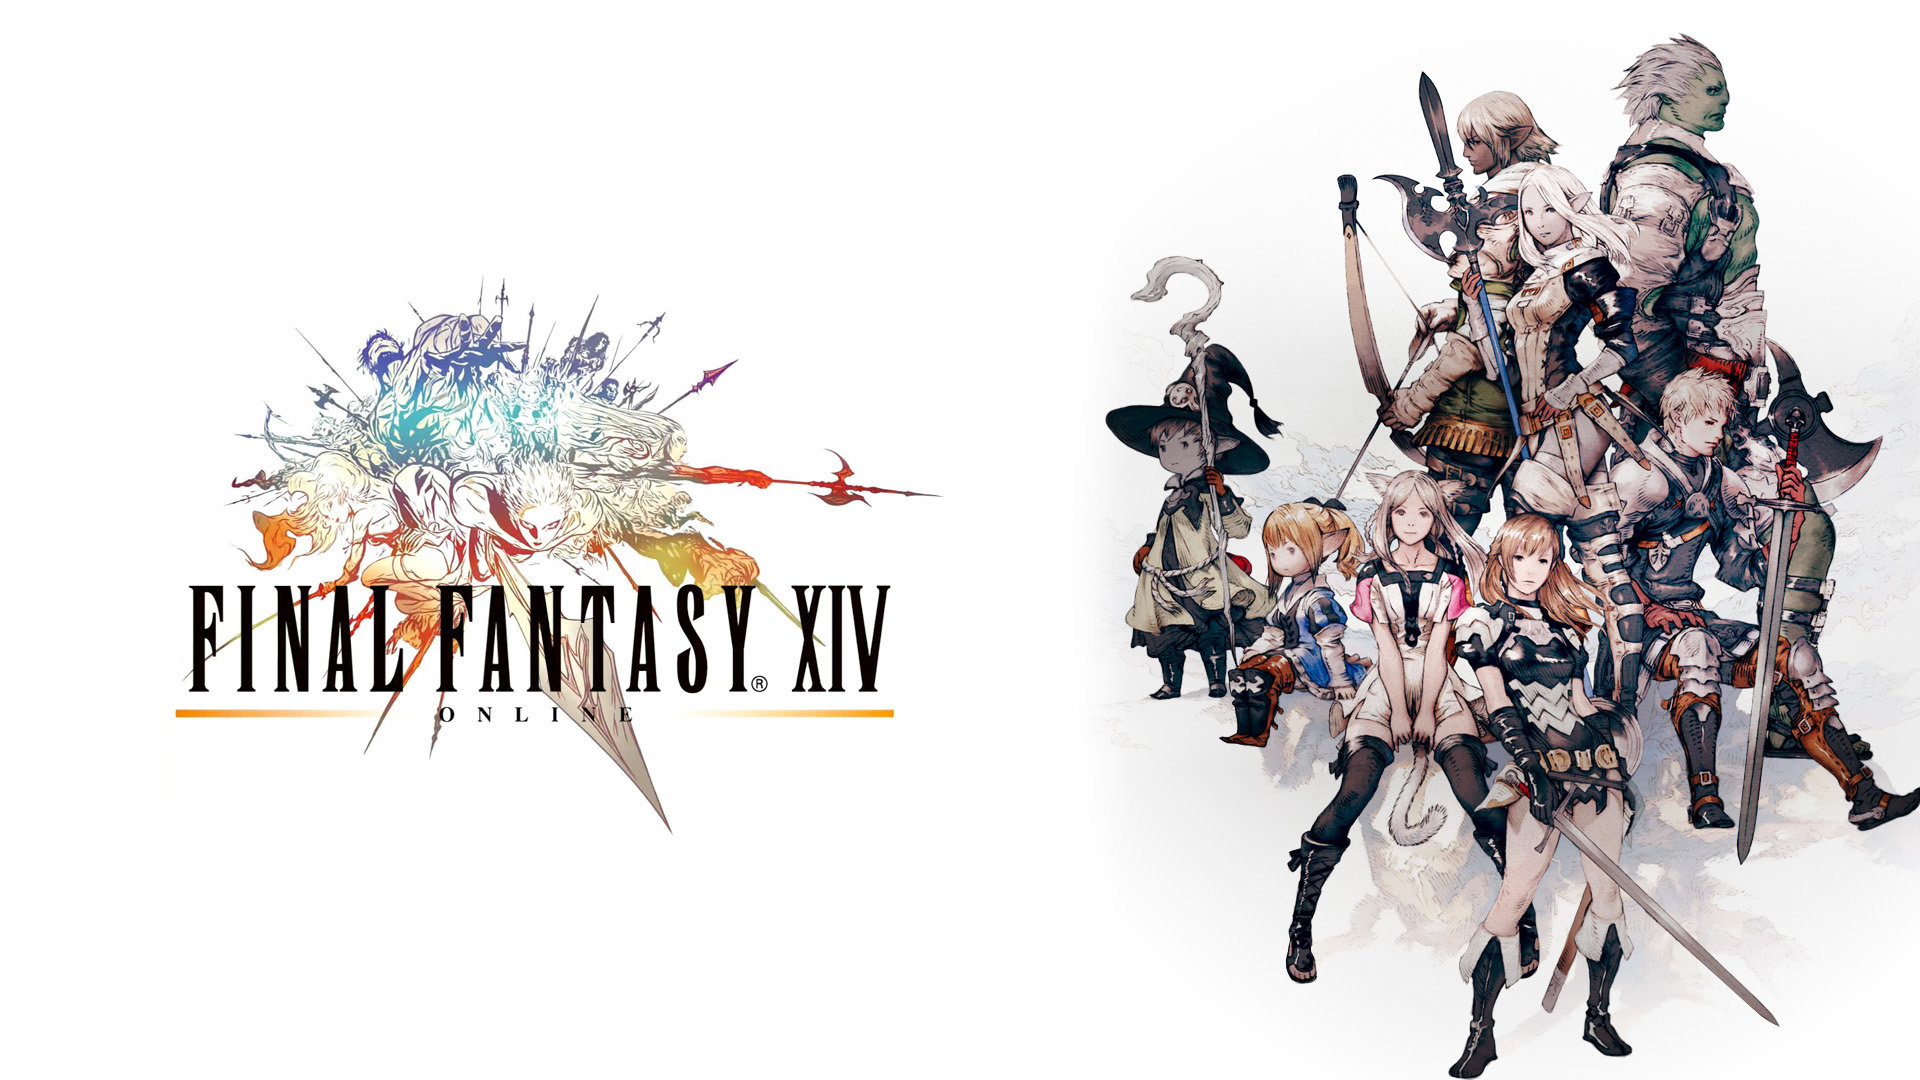 Best Final Fantasy Xiv Ff14 Wallpaper Id 155898 For High